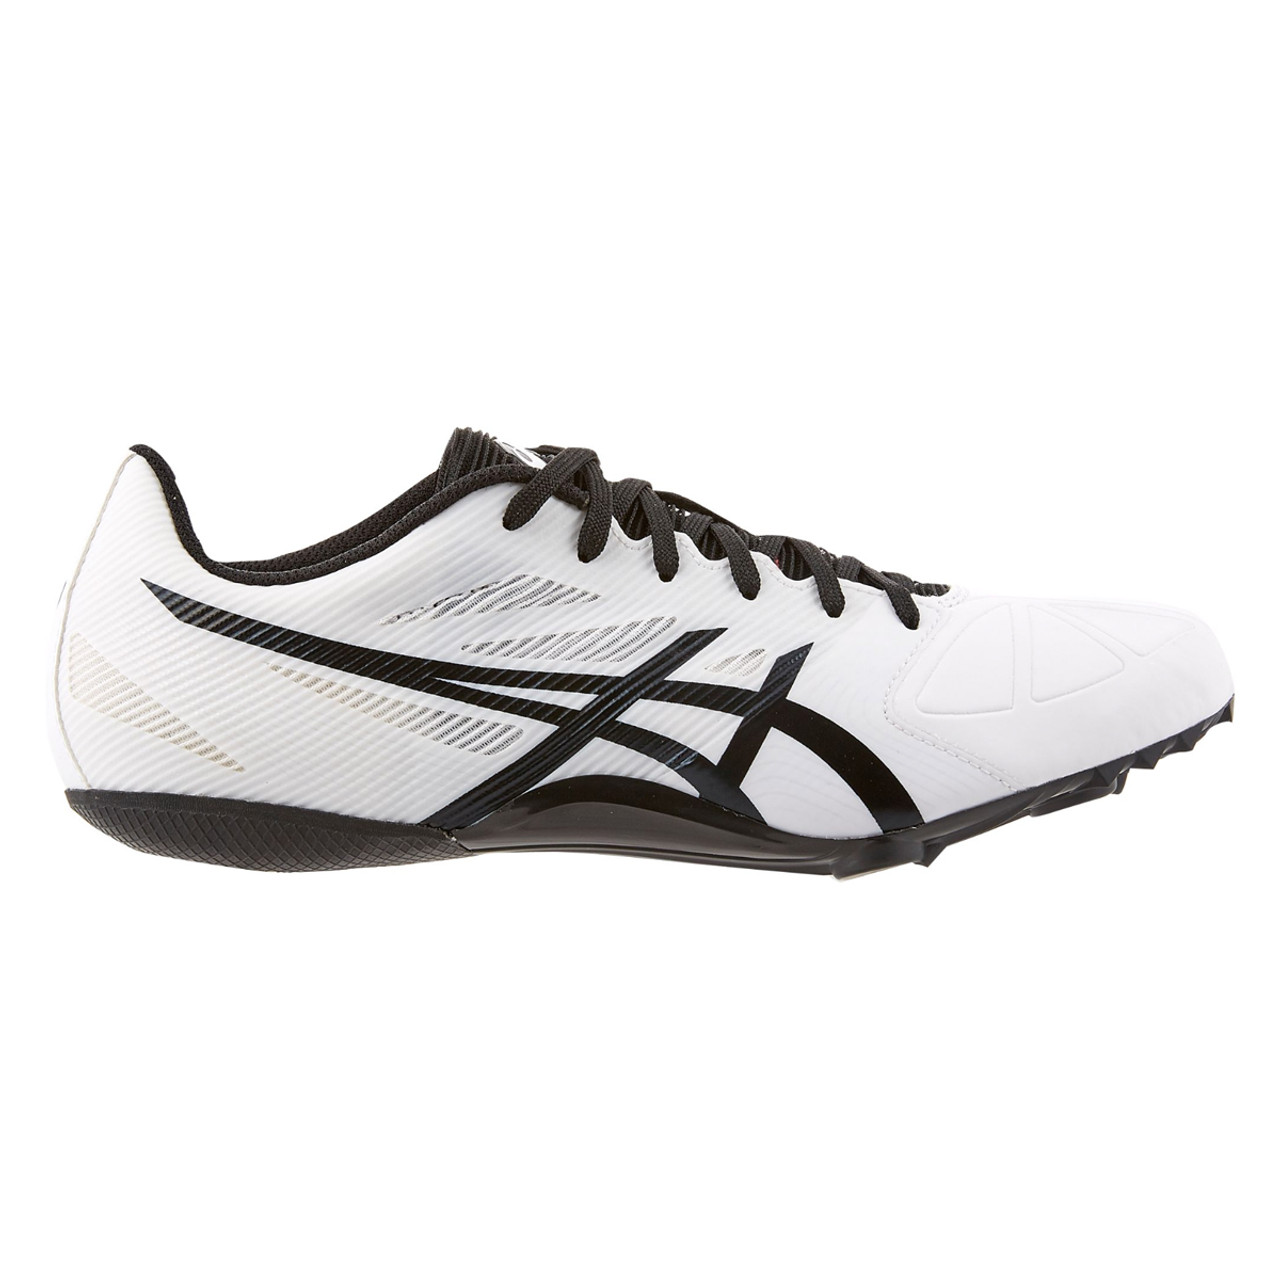 Asics HyperSprint 6 Men's Track and Field Shoes White, Black, Snow